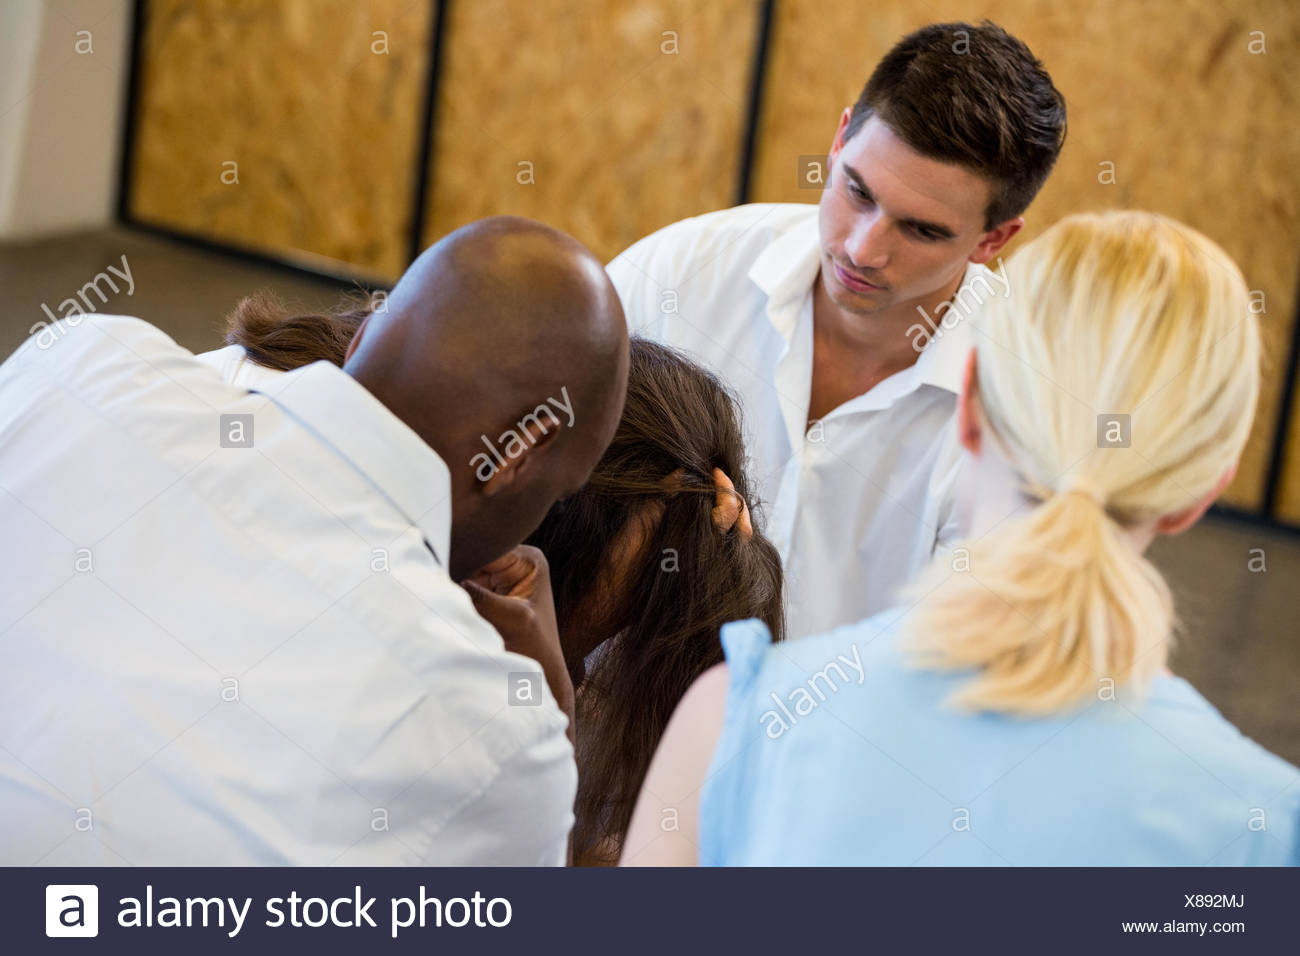 Colleagues comforting a unhappy woman - Stock Image